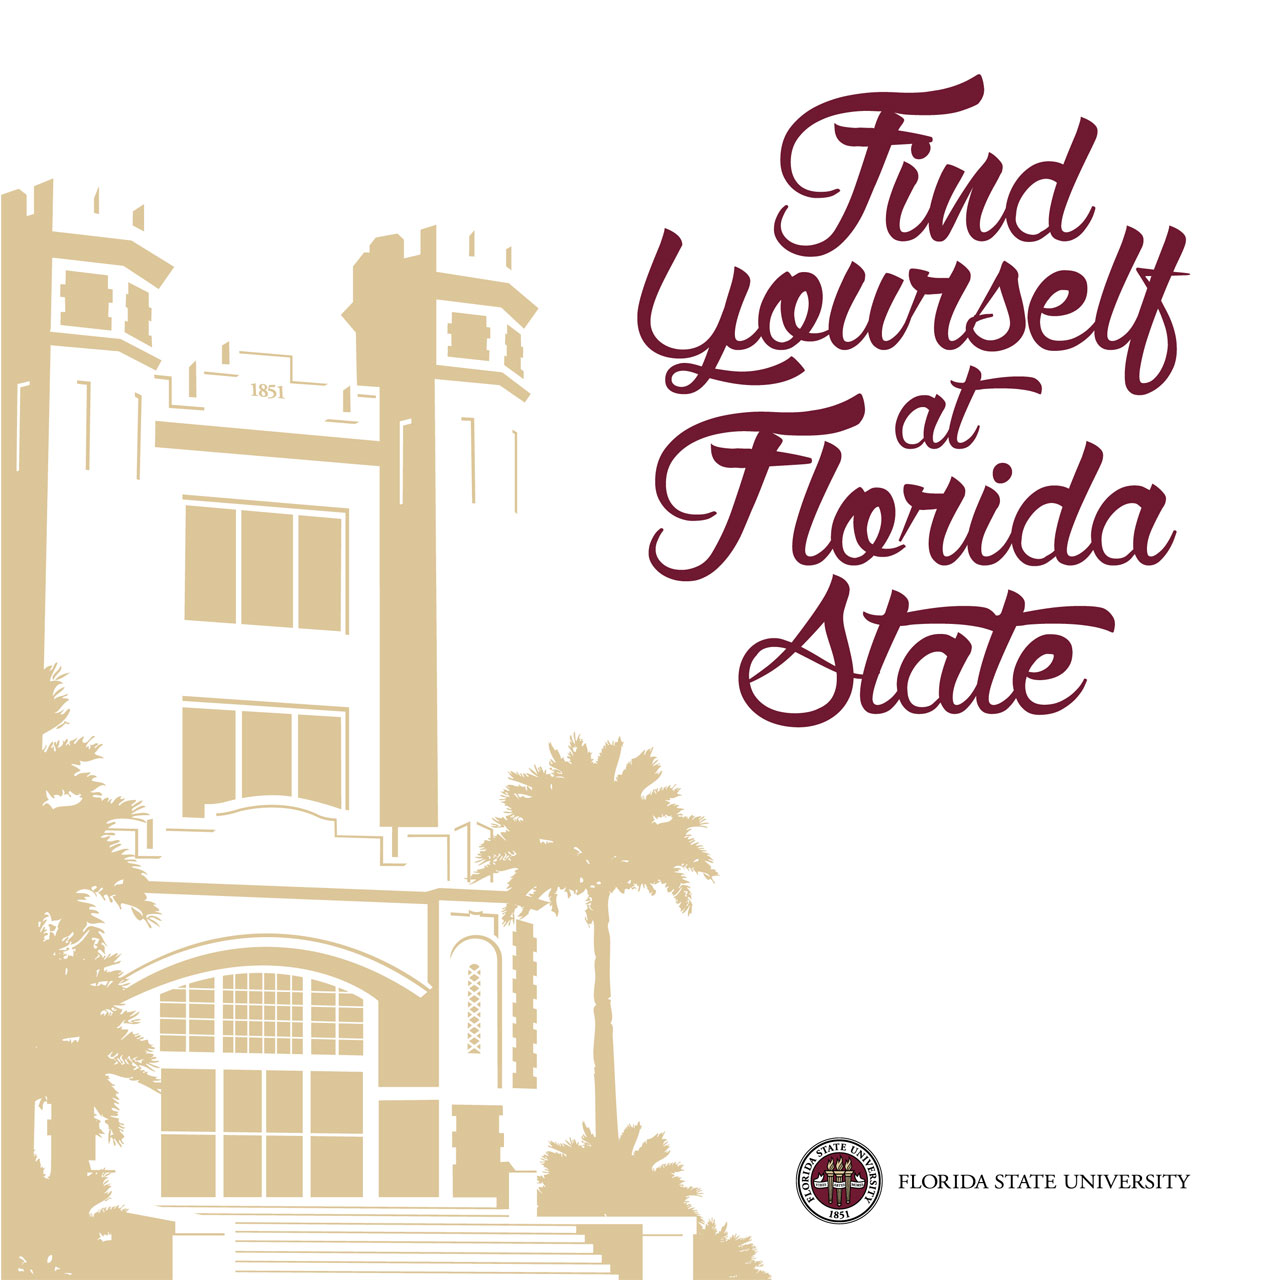 Fsu application essay 2016